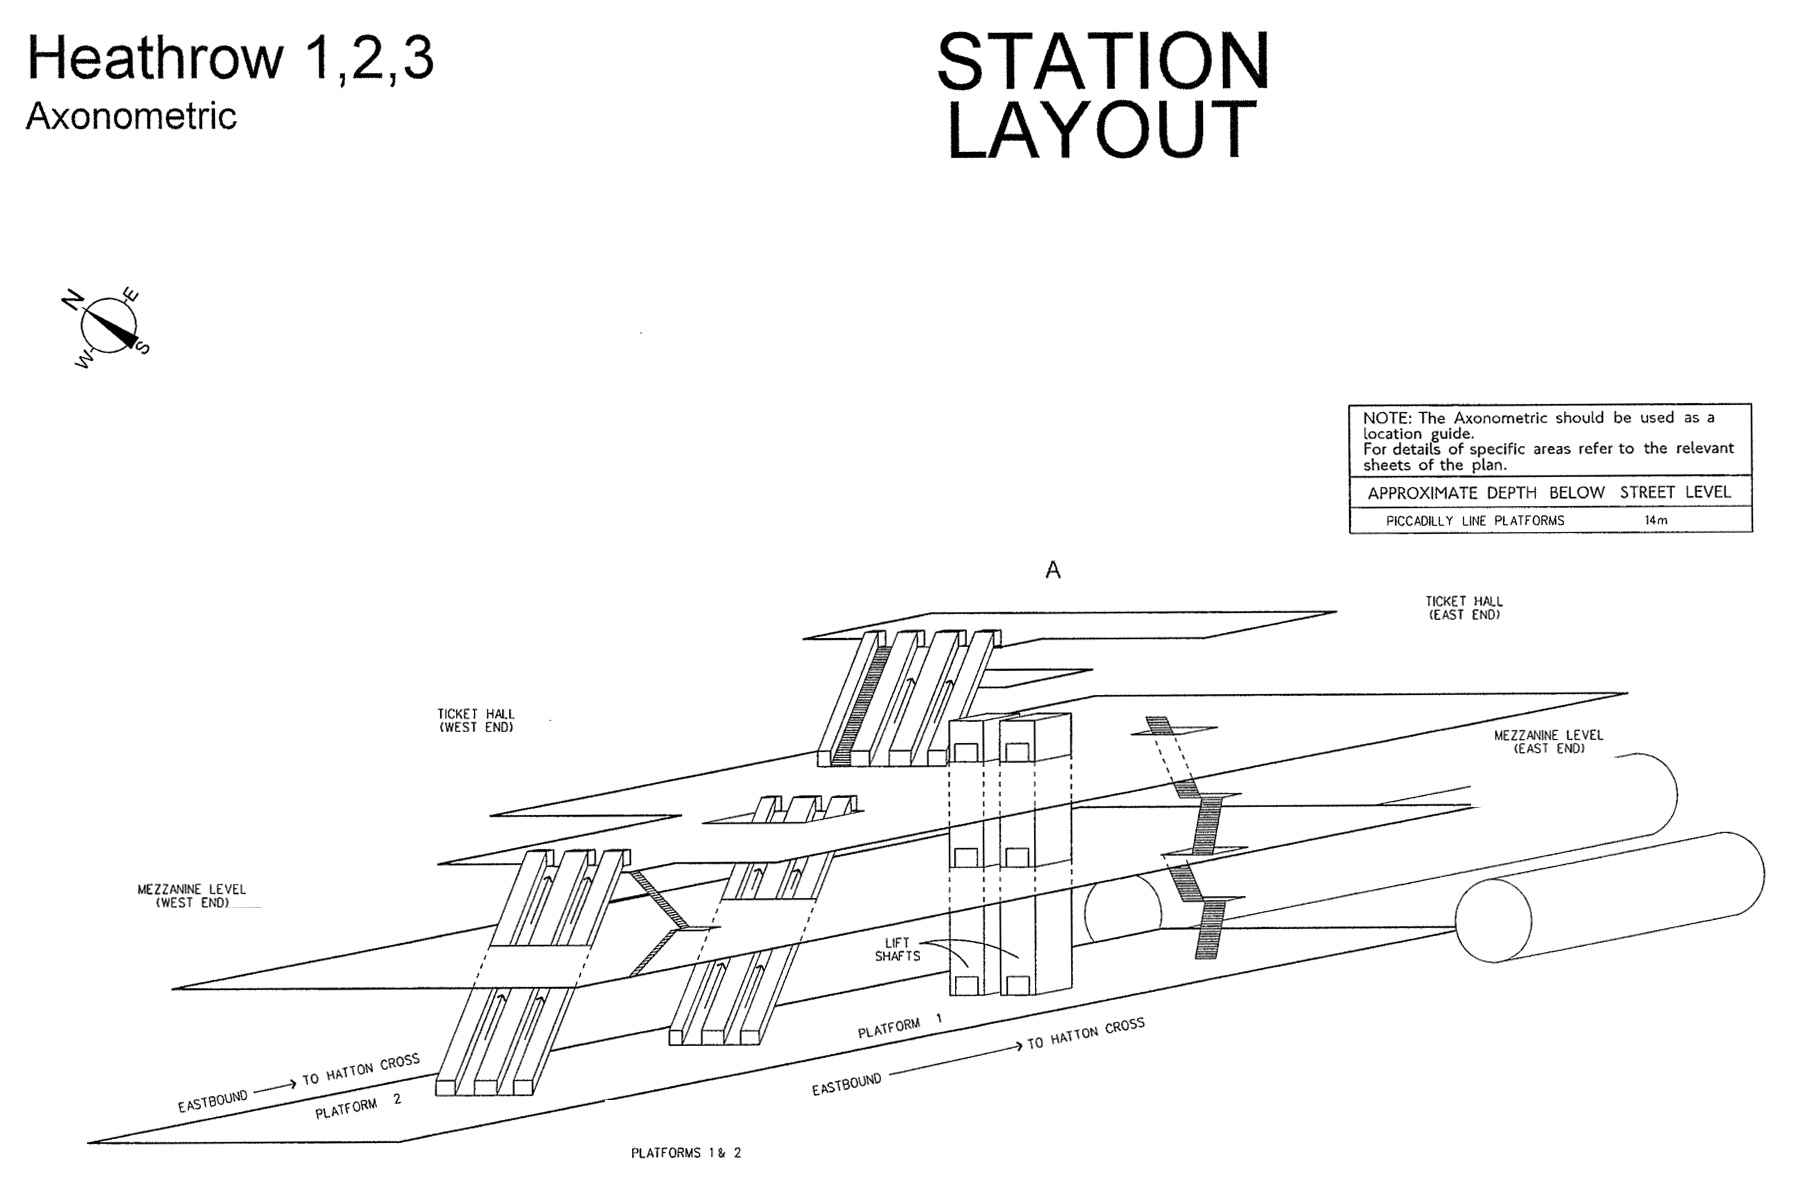 diagramme-3d-station-metro-londres-heathrow-123-08